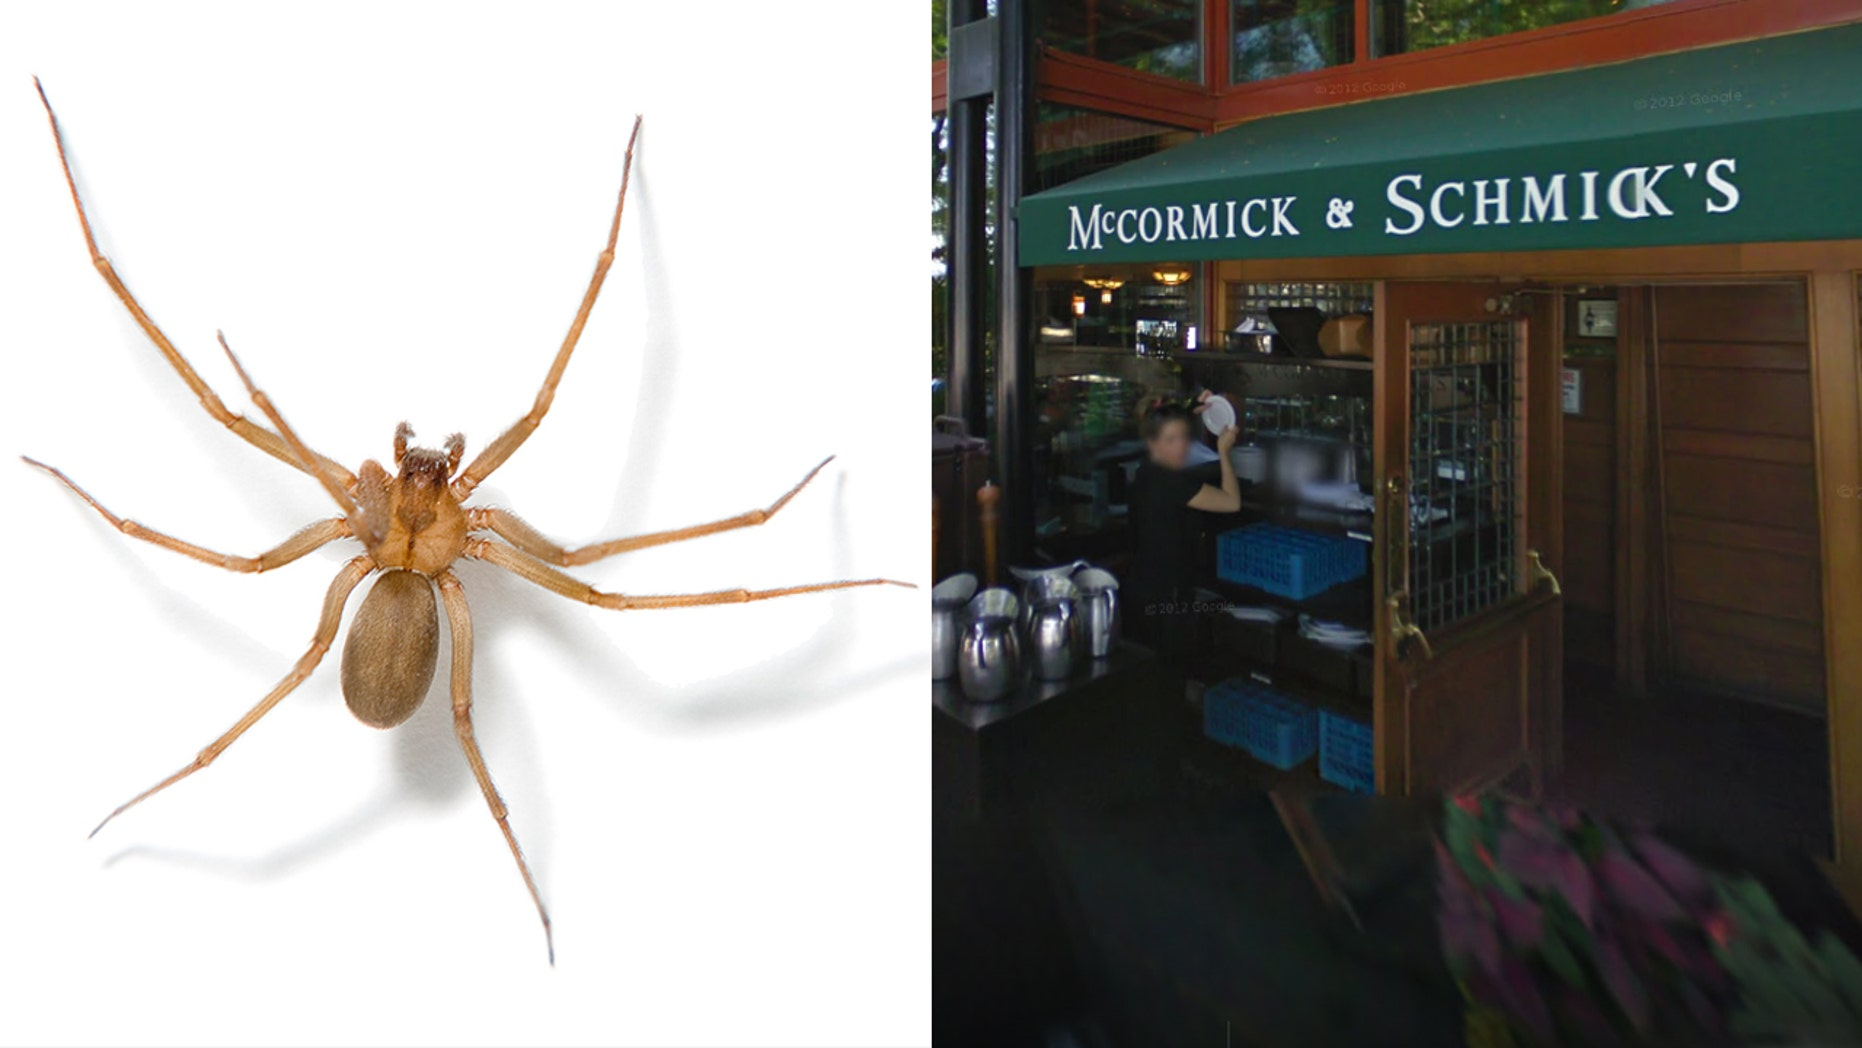 A general manager at McCormick and Schmick's in Oregon is suing for $999,999 after he allegedly was bit by a dangerous brown recluse spider.